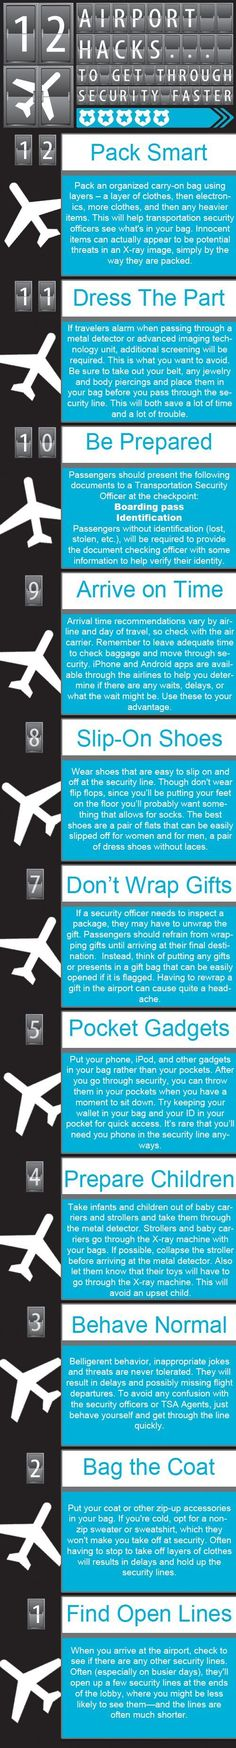 12 Airport Hacks To Fly Through Security